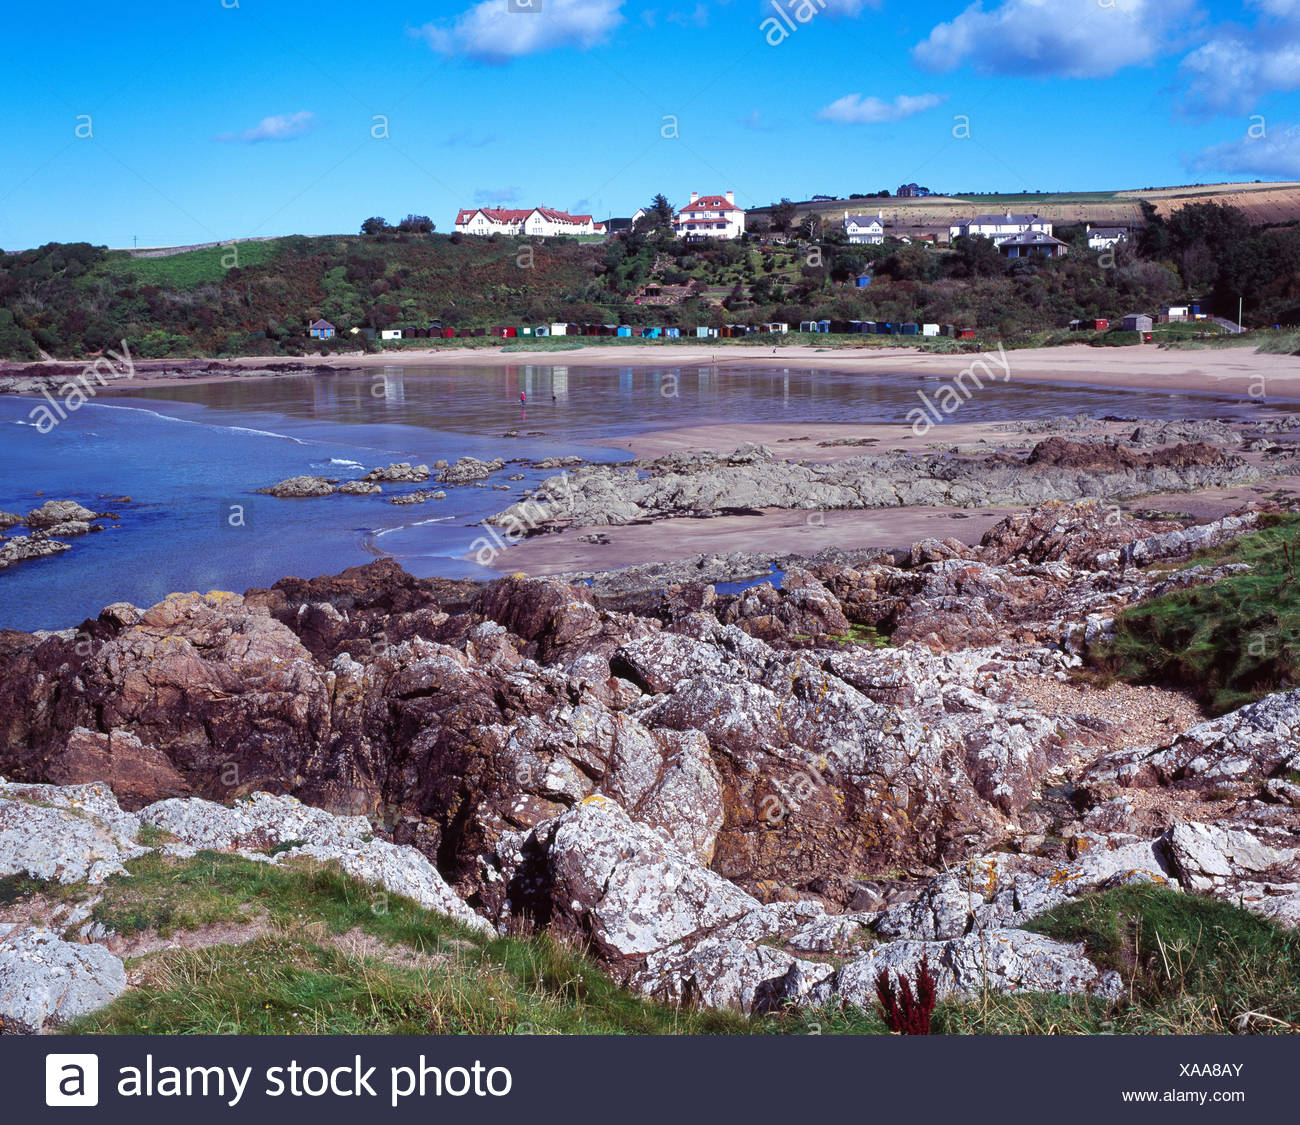 Beach at Coldingham Bay, Scotland, UK - Stock Image